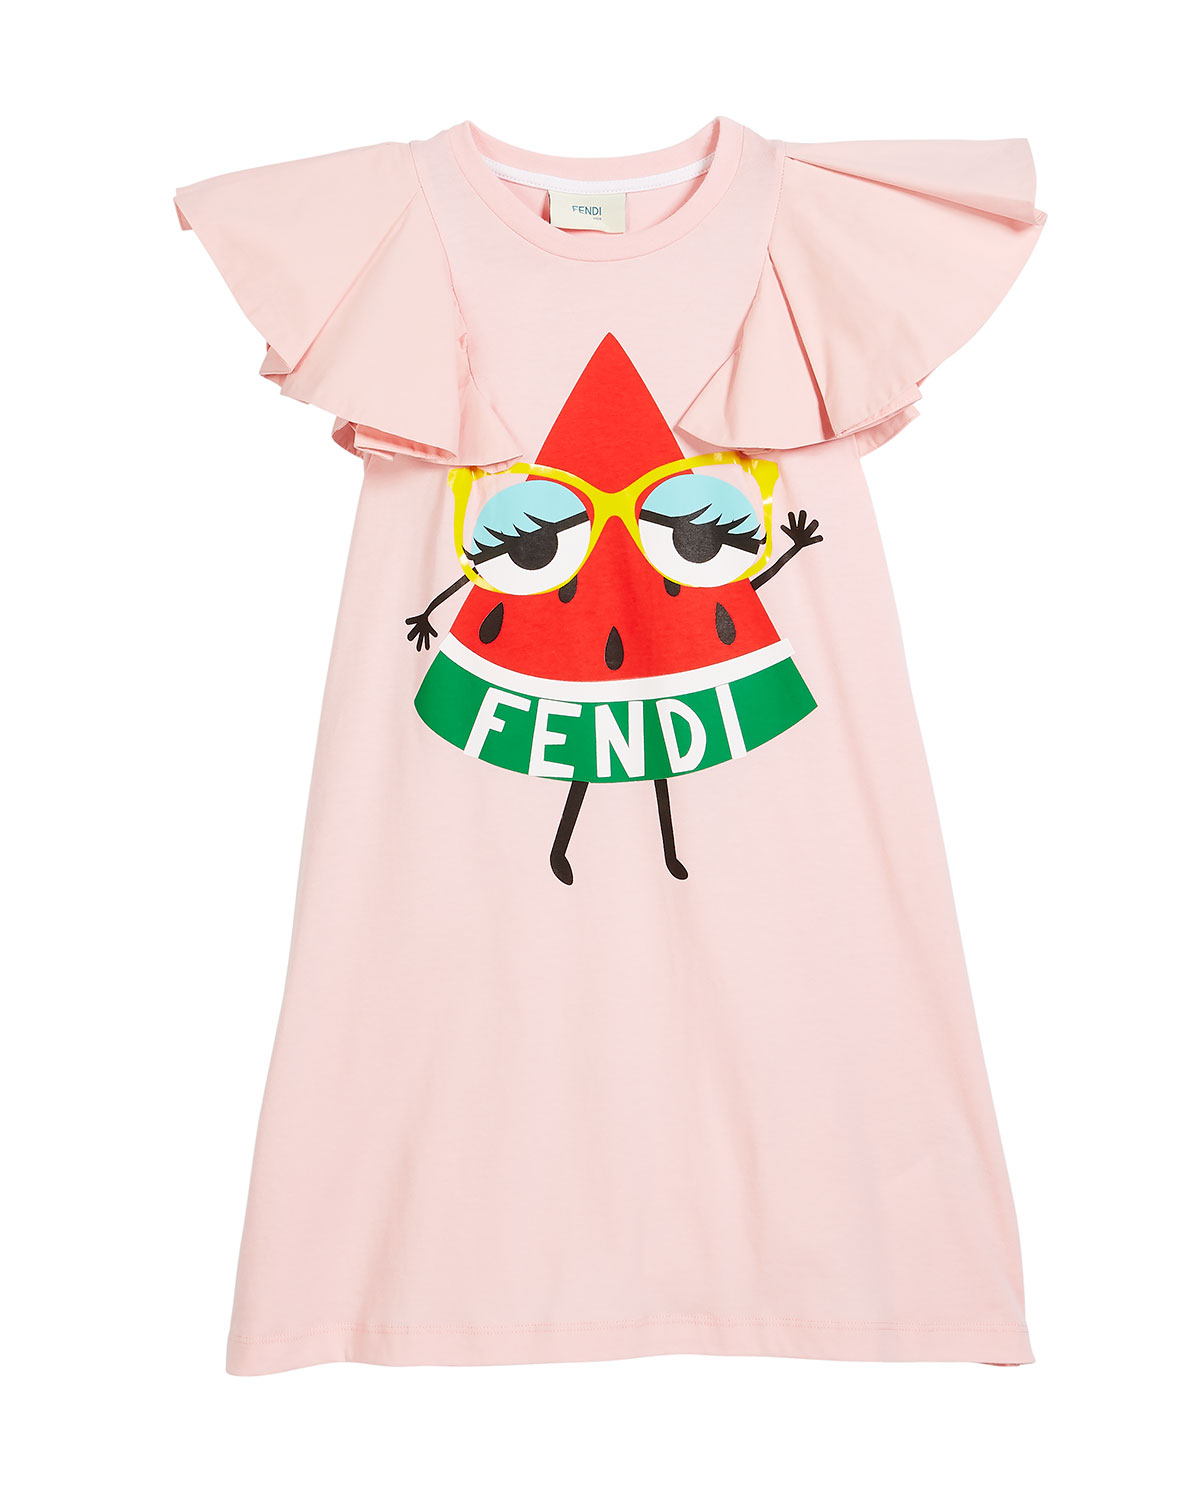 Watermelon Logo Dress, Size 3-5